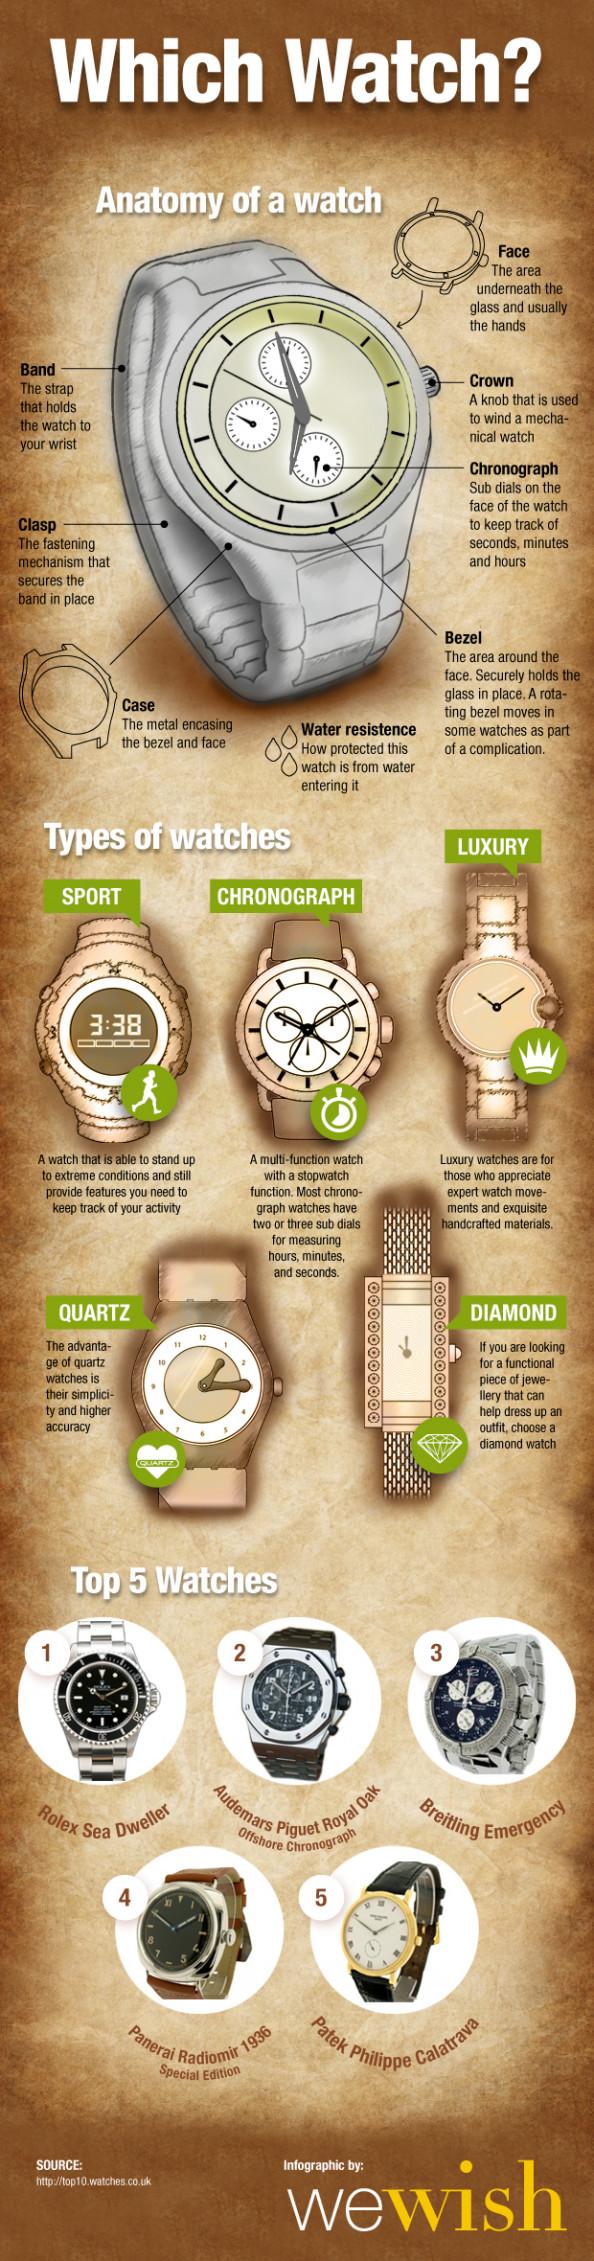 Which Watch? Infographic